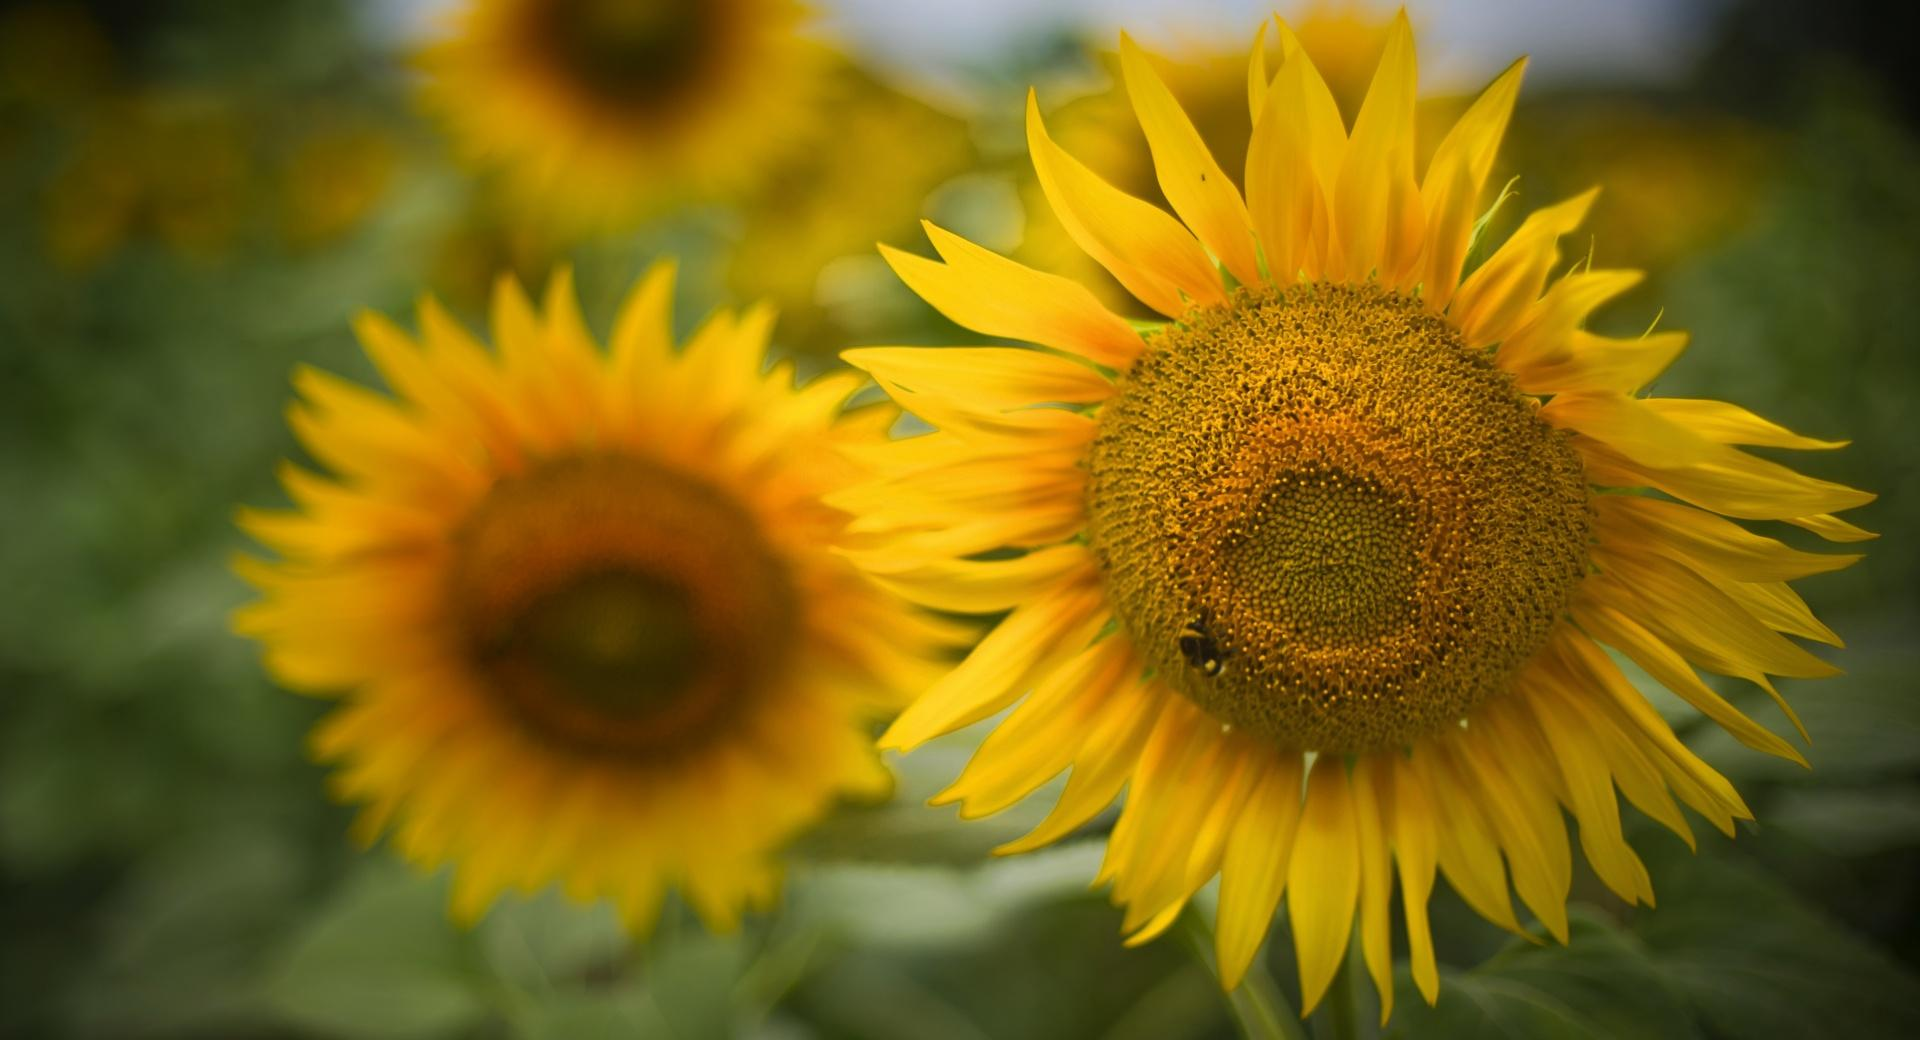 Beautiful Sunflowers wallpapers HD quality